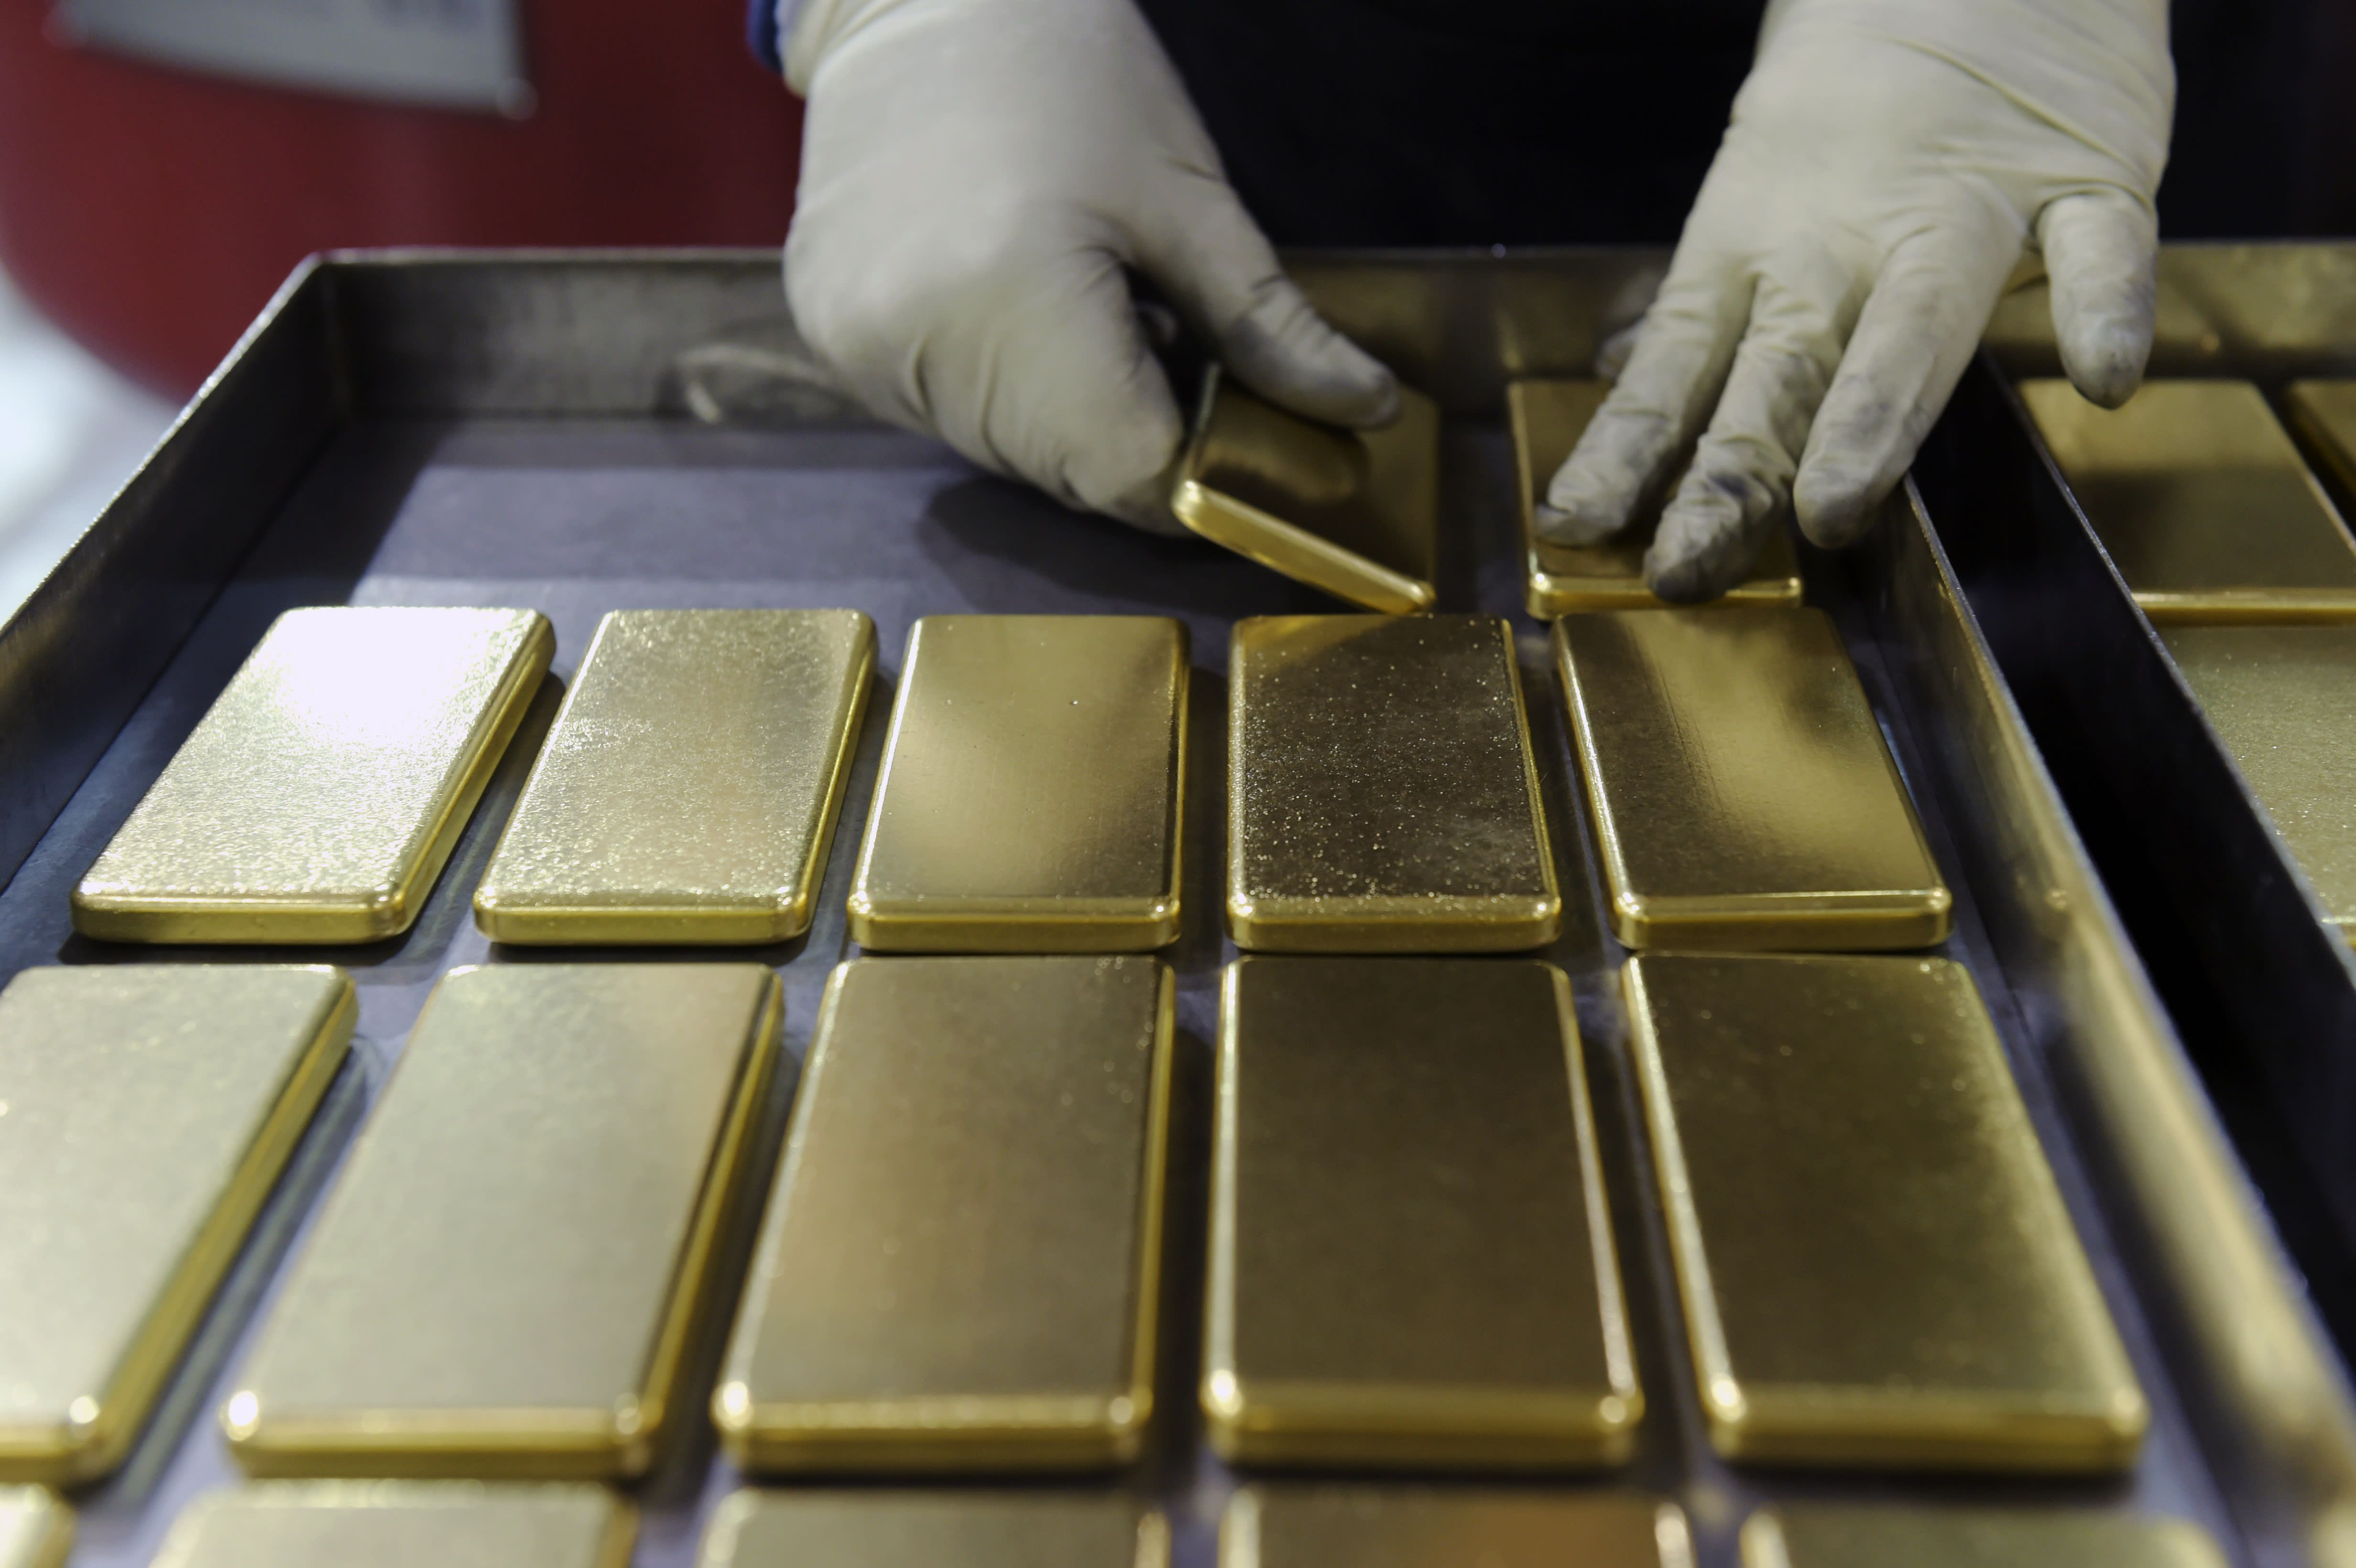 Jim Cramer Charts show gold prices are nearing a peak in